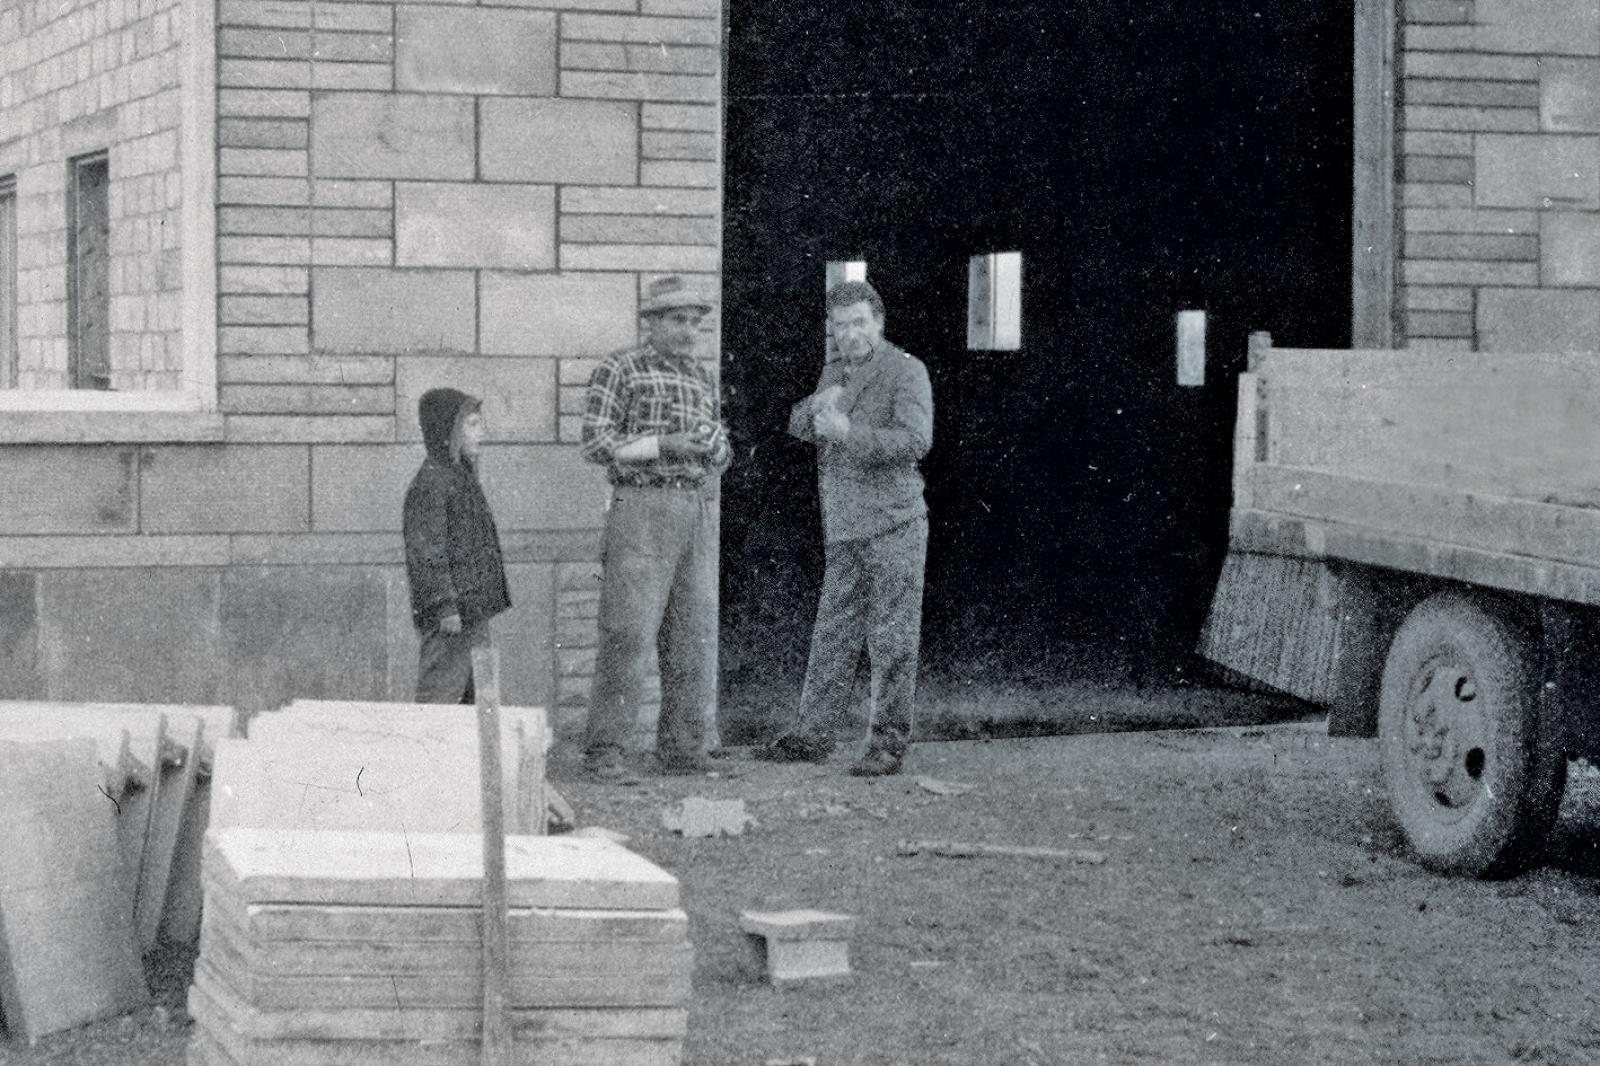 Back in 1962, before the formation of Best Way Stone, Angelo Pignatelli (wearing hat), and his son Paolo (at truck door) were busy installing patios.